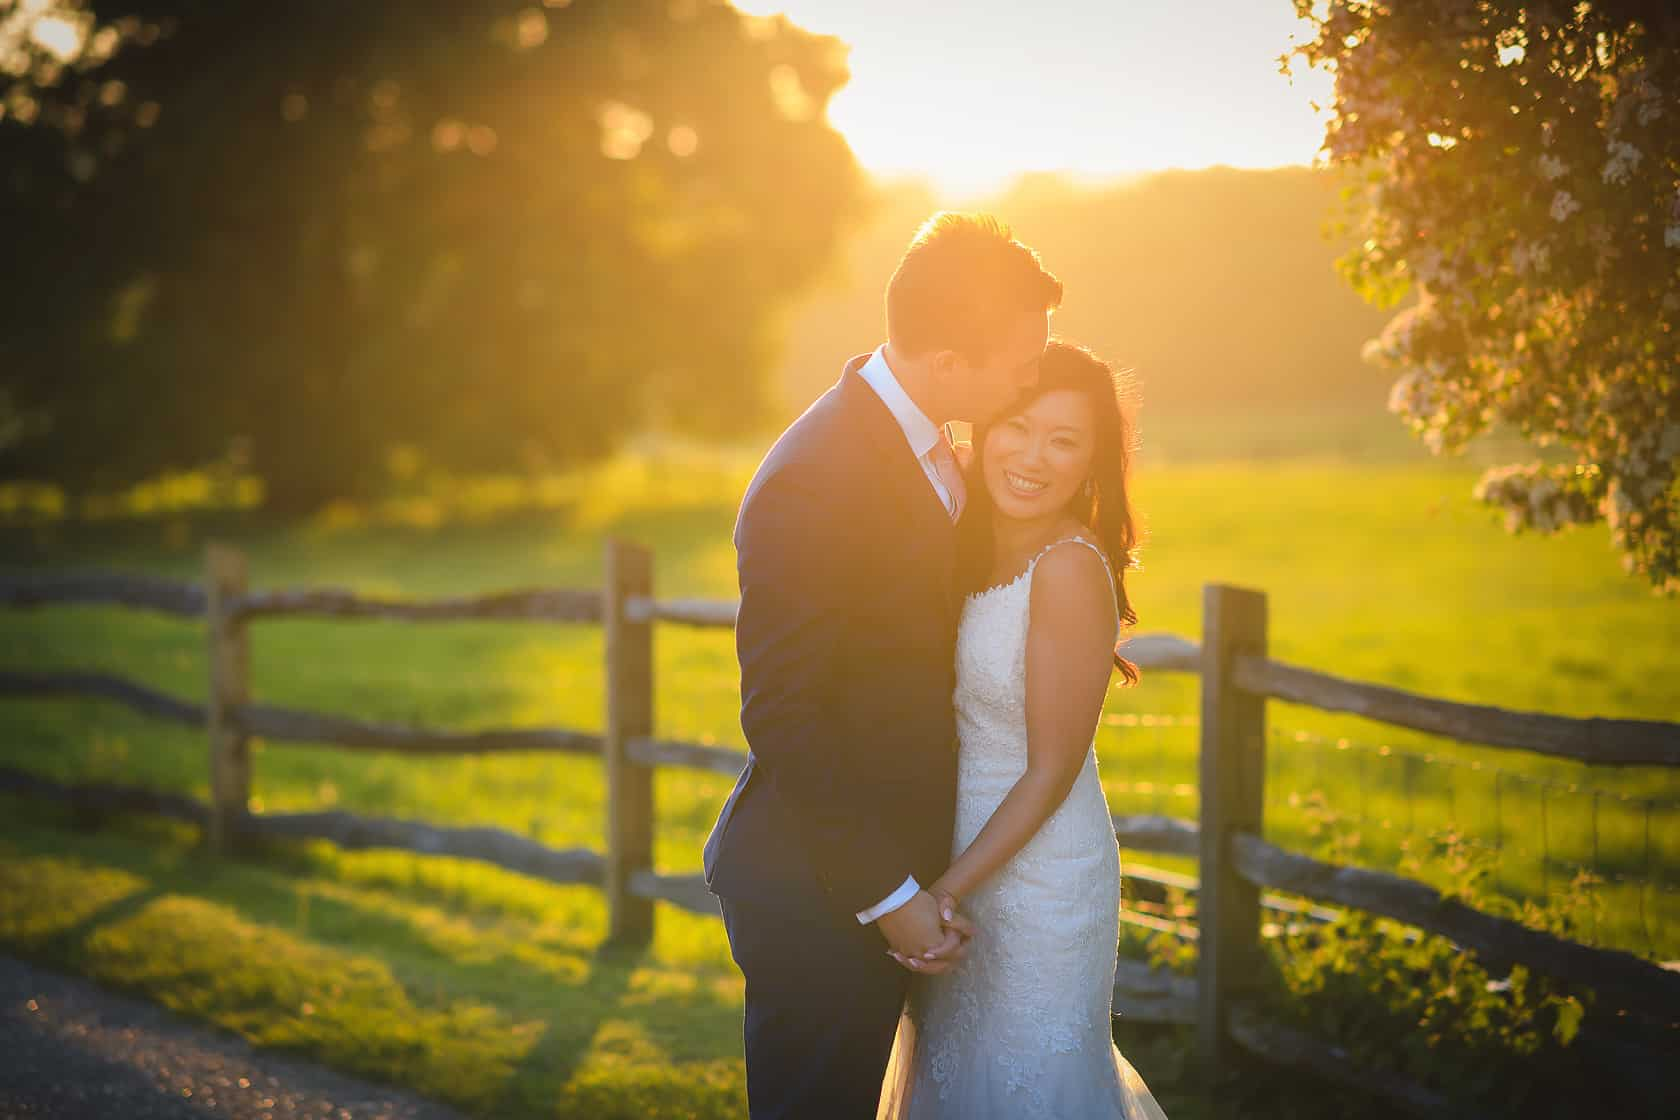 Best_Wedding_Photography_2018_Wedding-Photographer-Essex-and-London_046